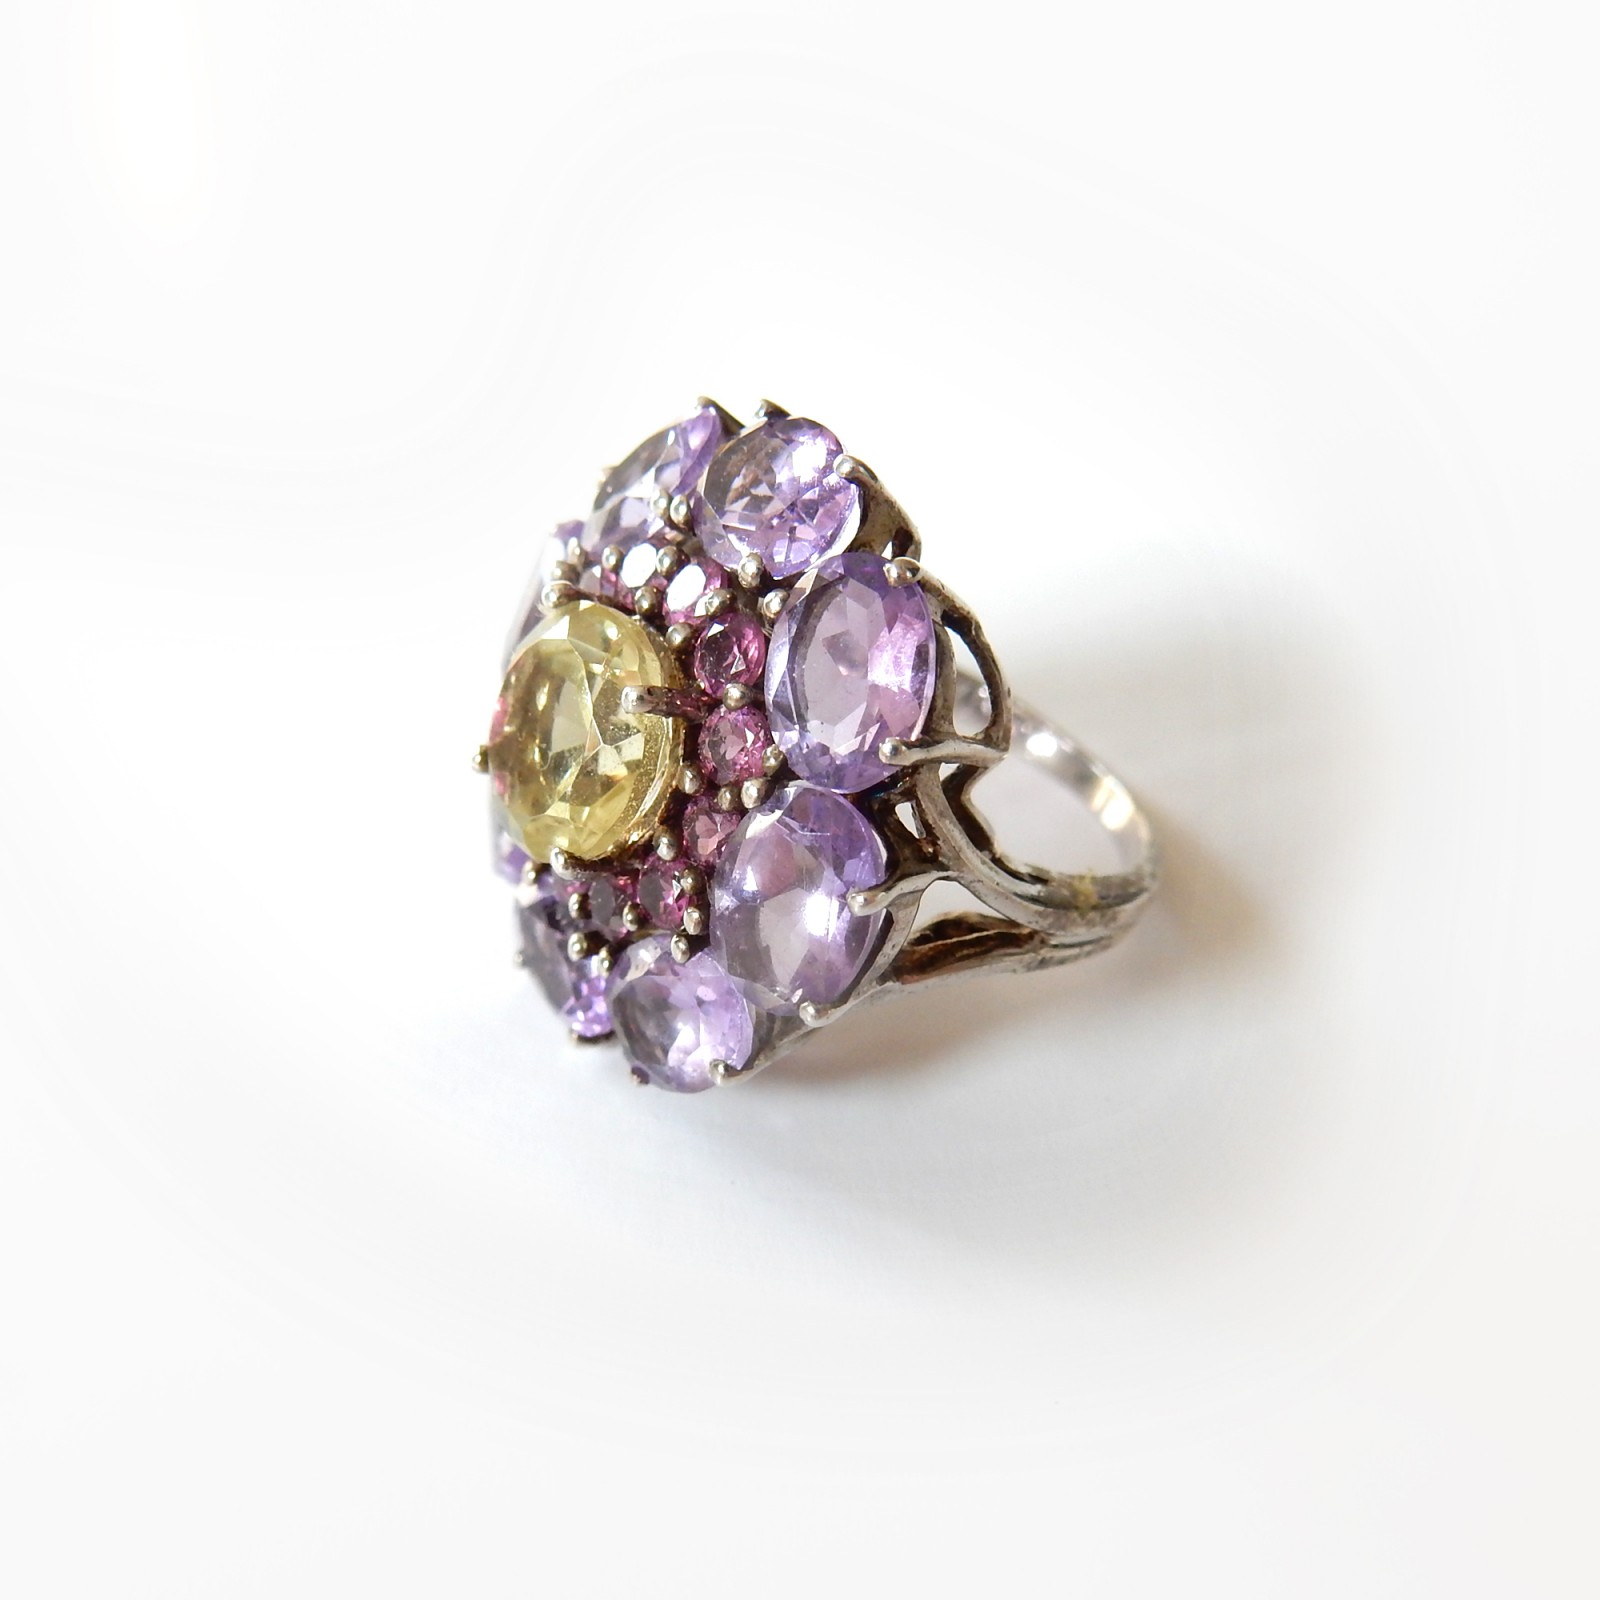 Photo of Amethyst Topaz Sapphire Dress Ring Solid Silver Fine Jewelery